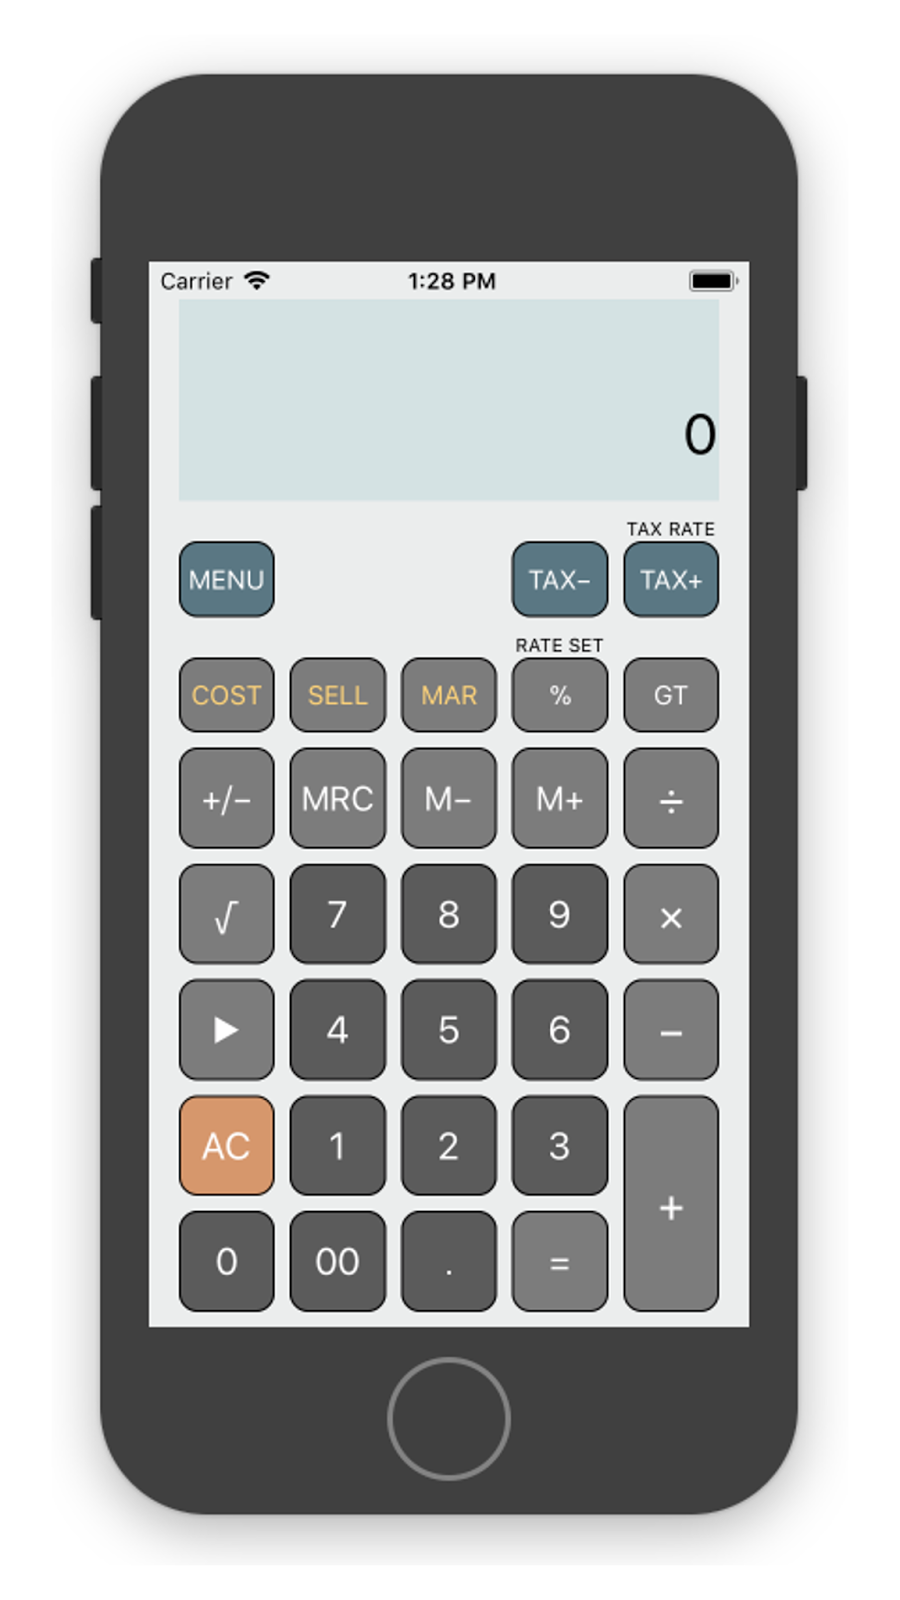 A Fully Working Emulator Of Casio Calculator Model Dm 1200bm Ms 120bm The Includes Tax And Business Functions Which Is Very Useful For